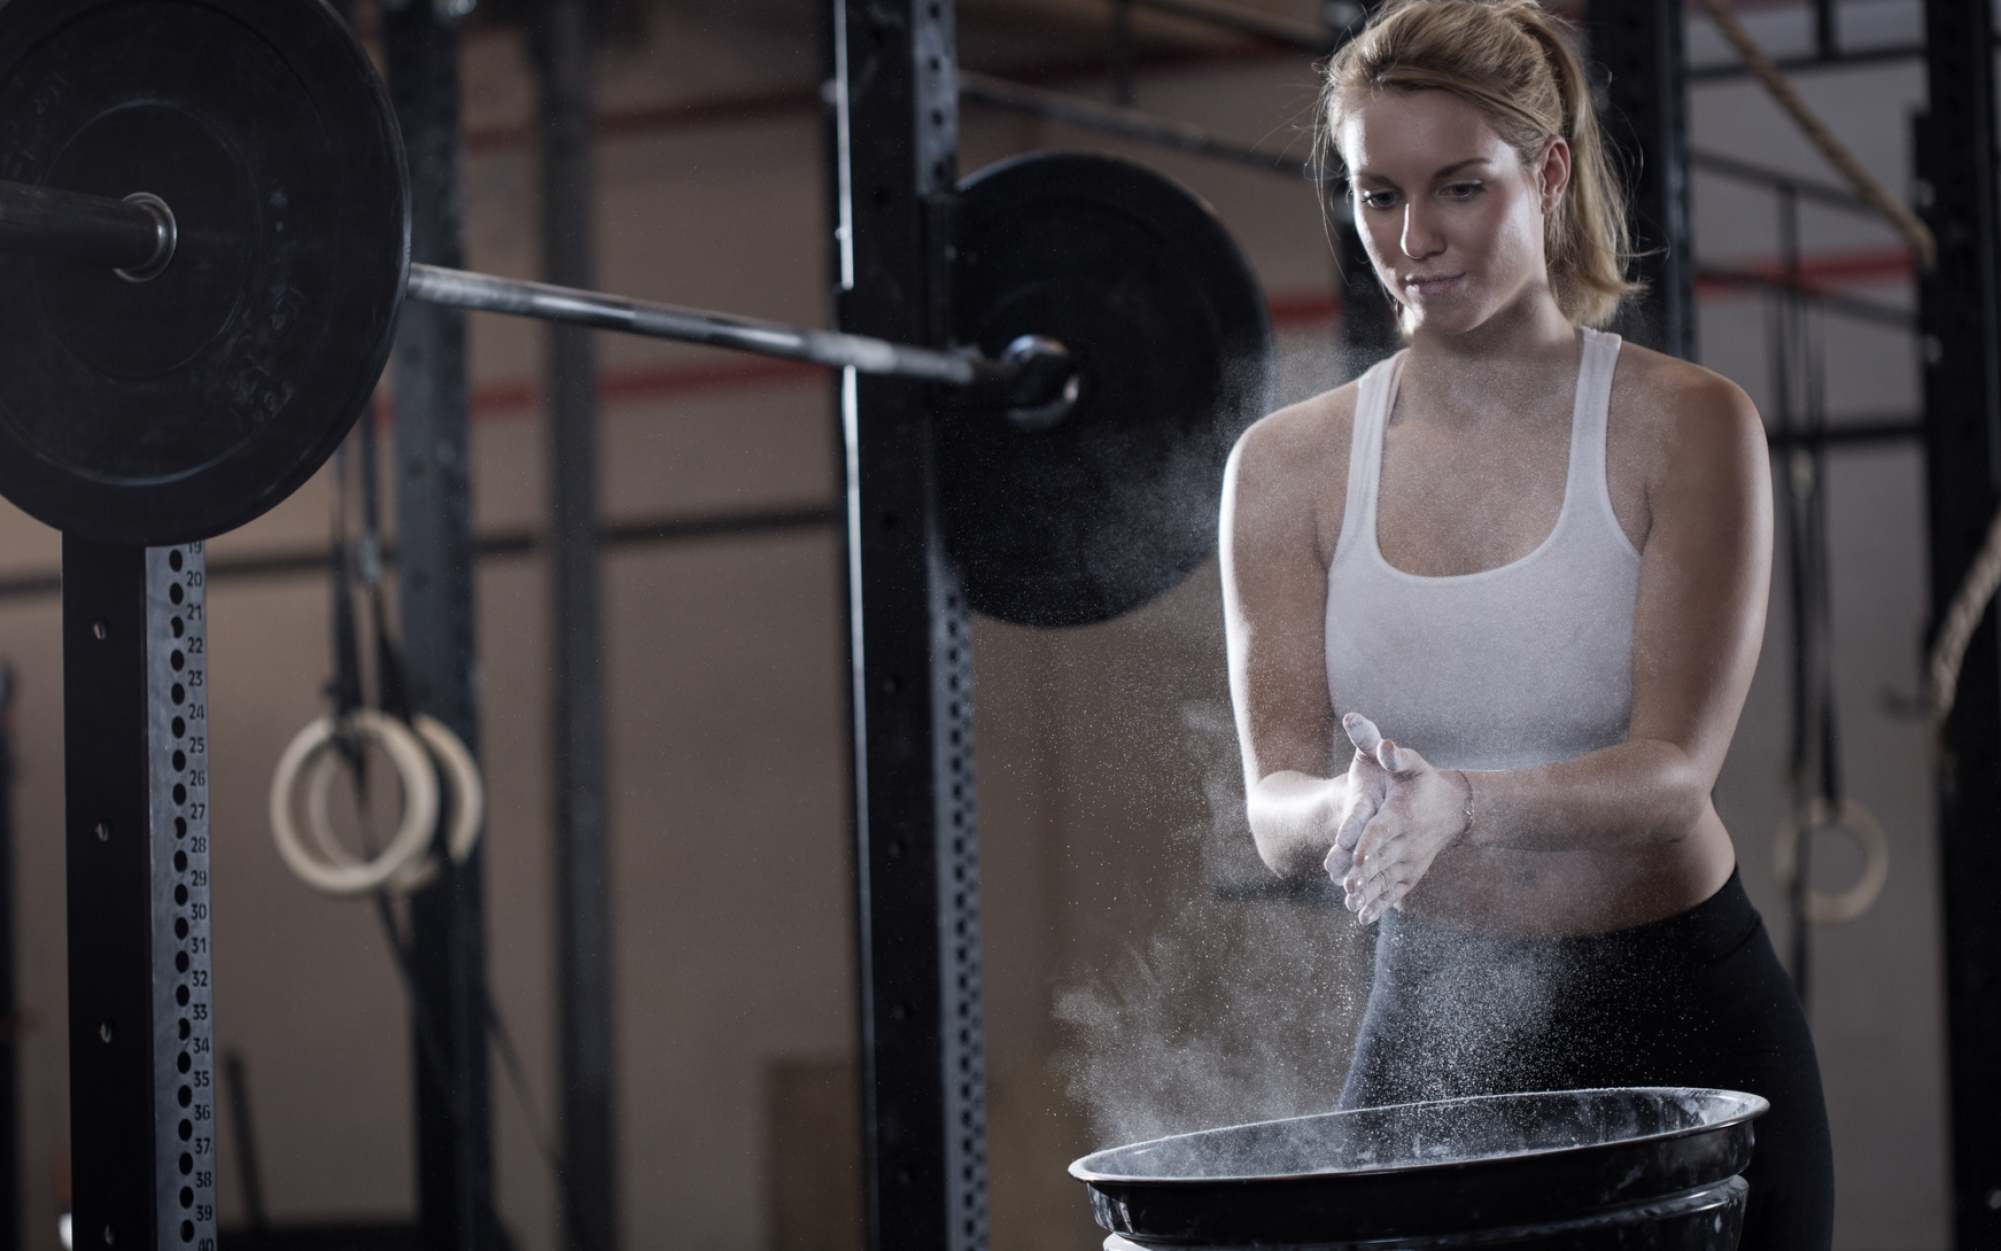 5 Ways To Motivate Yourself To Get Into The Gym